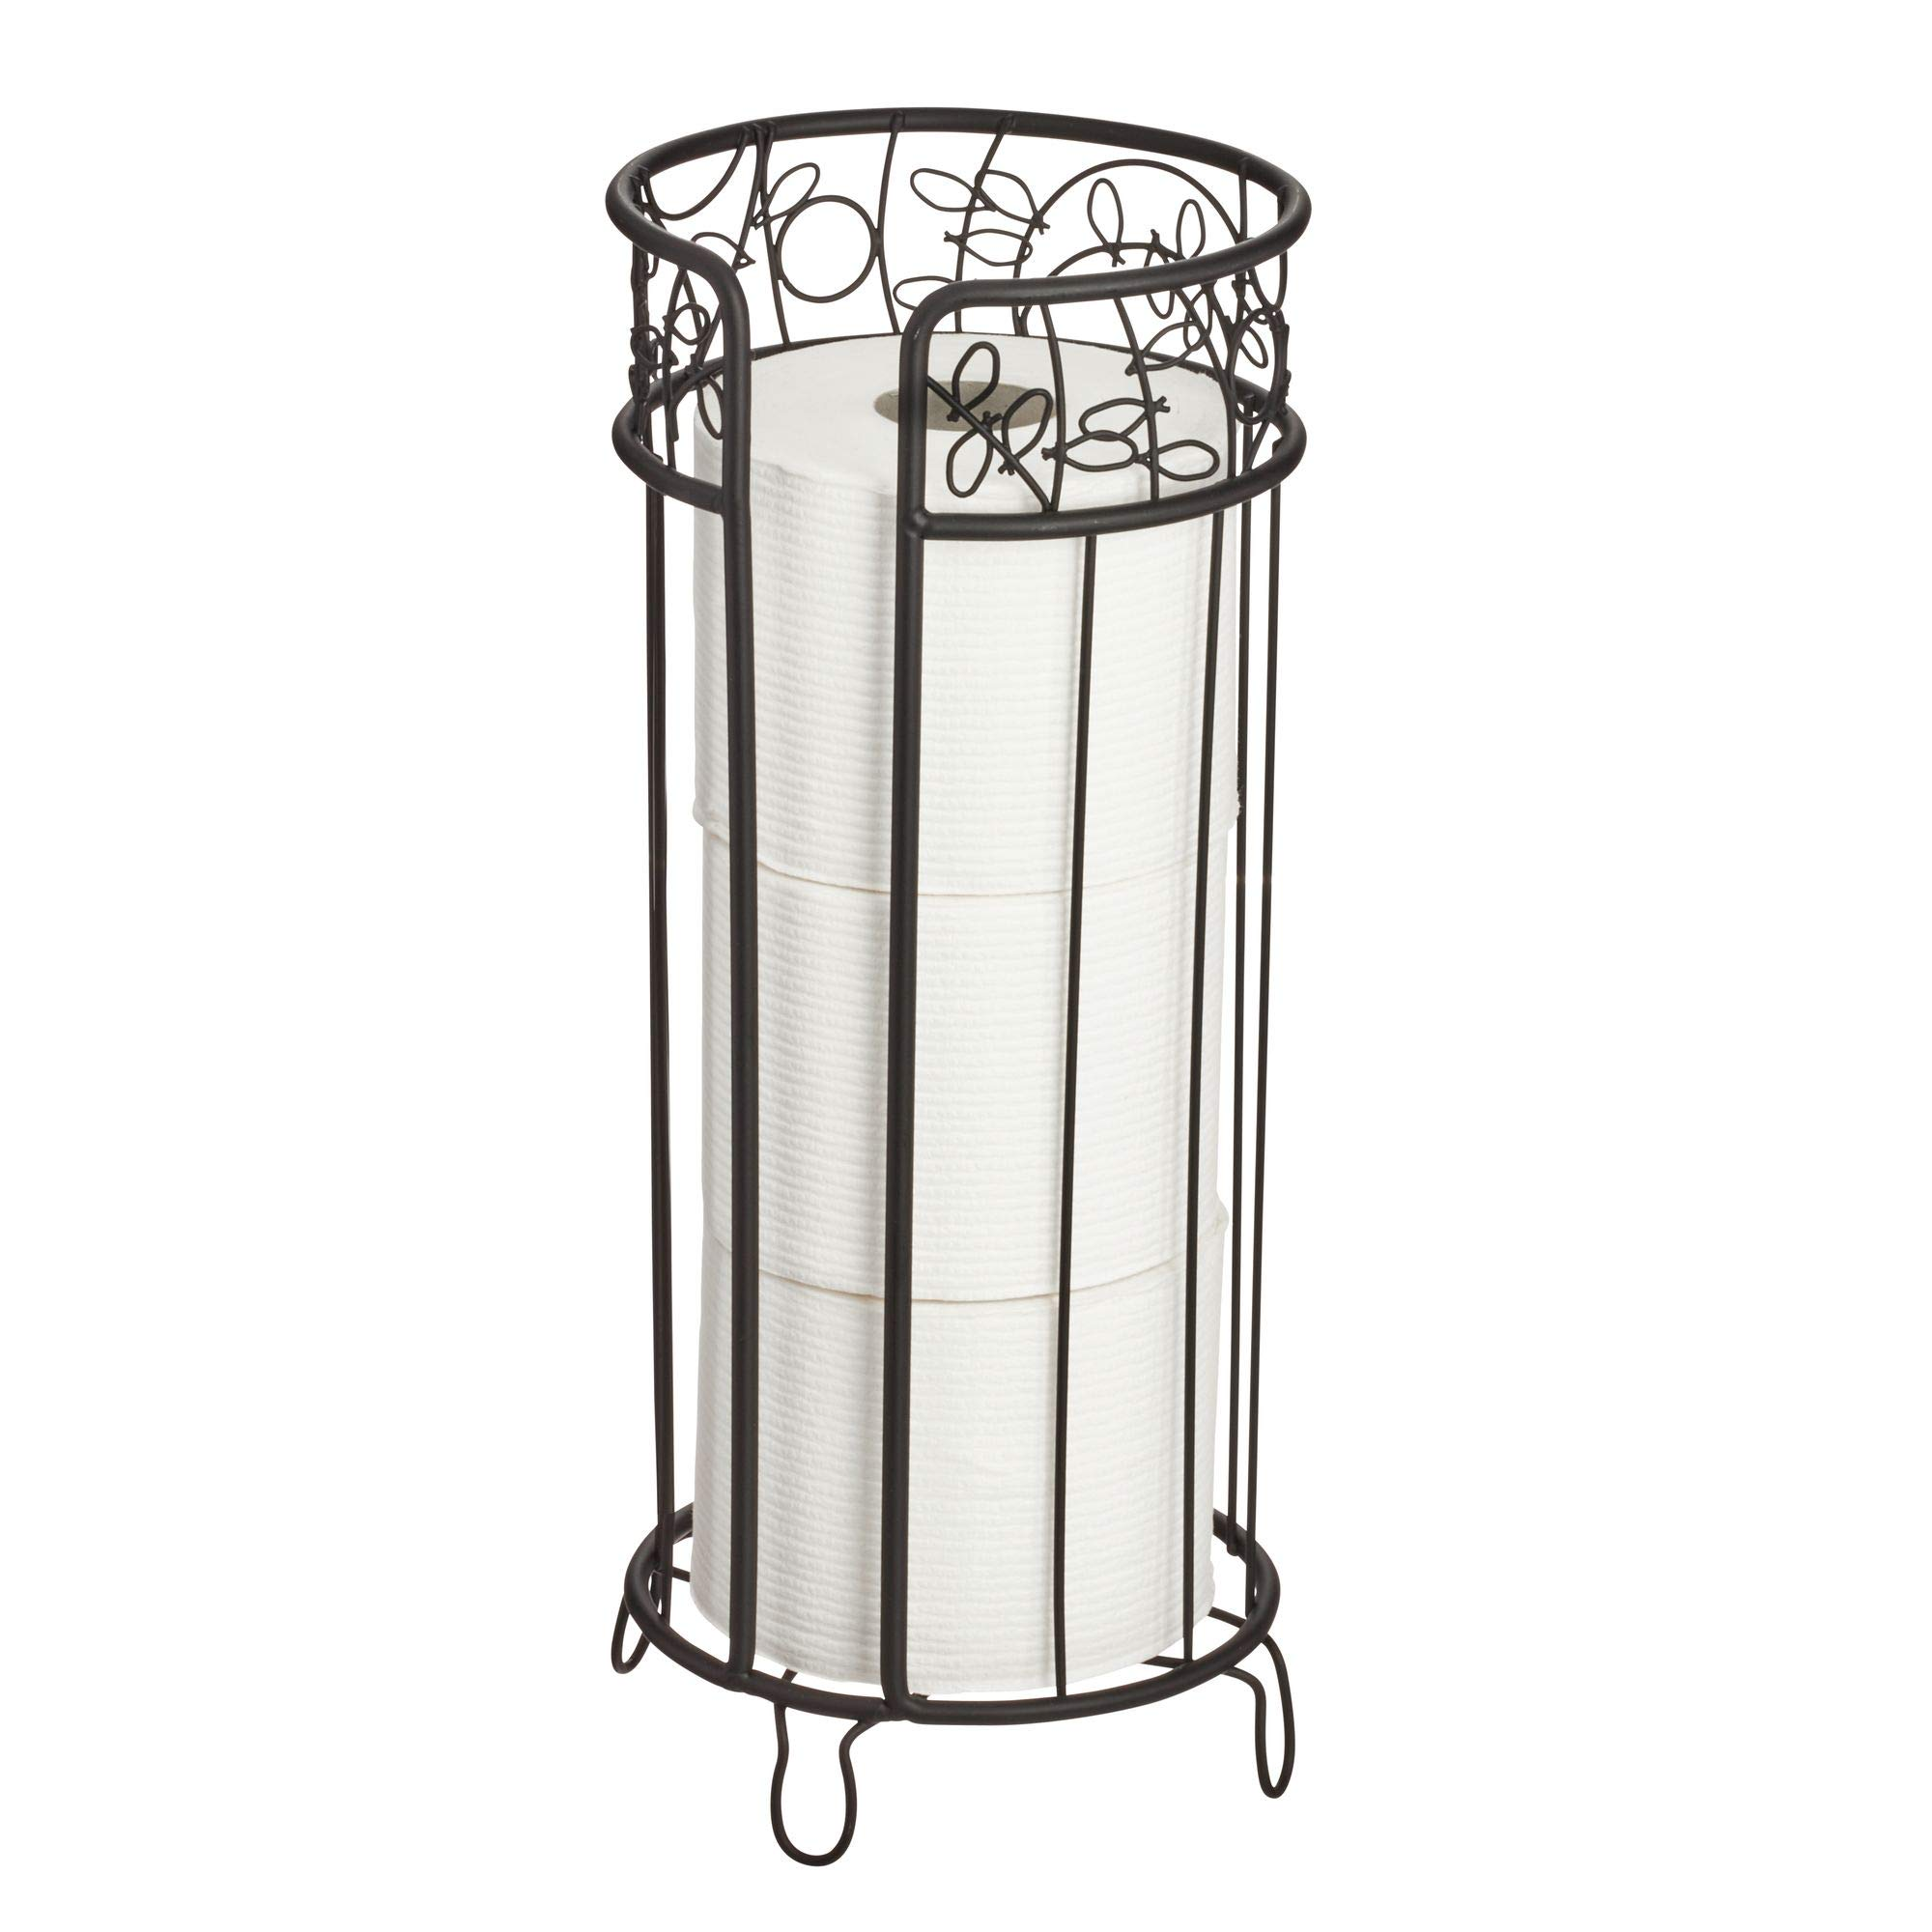 """iDesign Twigz Metal Free Standing Toilet Paper Roll Holder, Canister Reserve for Master, Guest, Kid's, Office Bathroom Storage, 6.8"""" x 6.8"""" x 15.2"""" - Matte Black"""